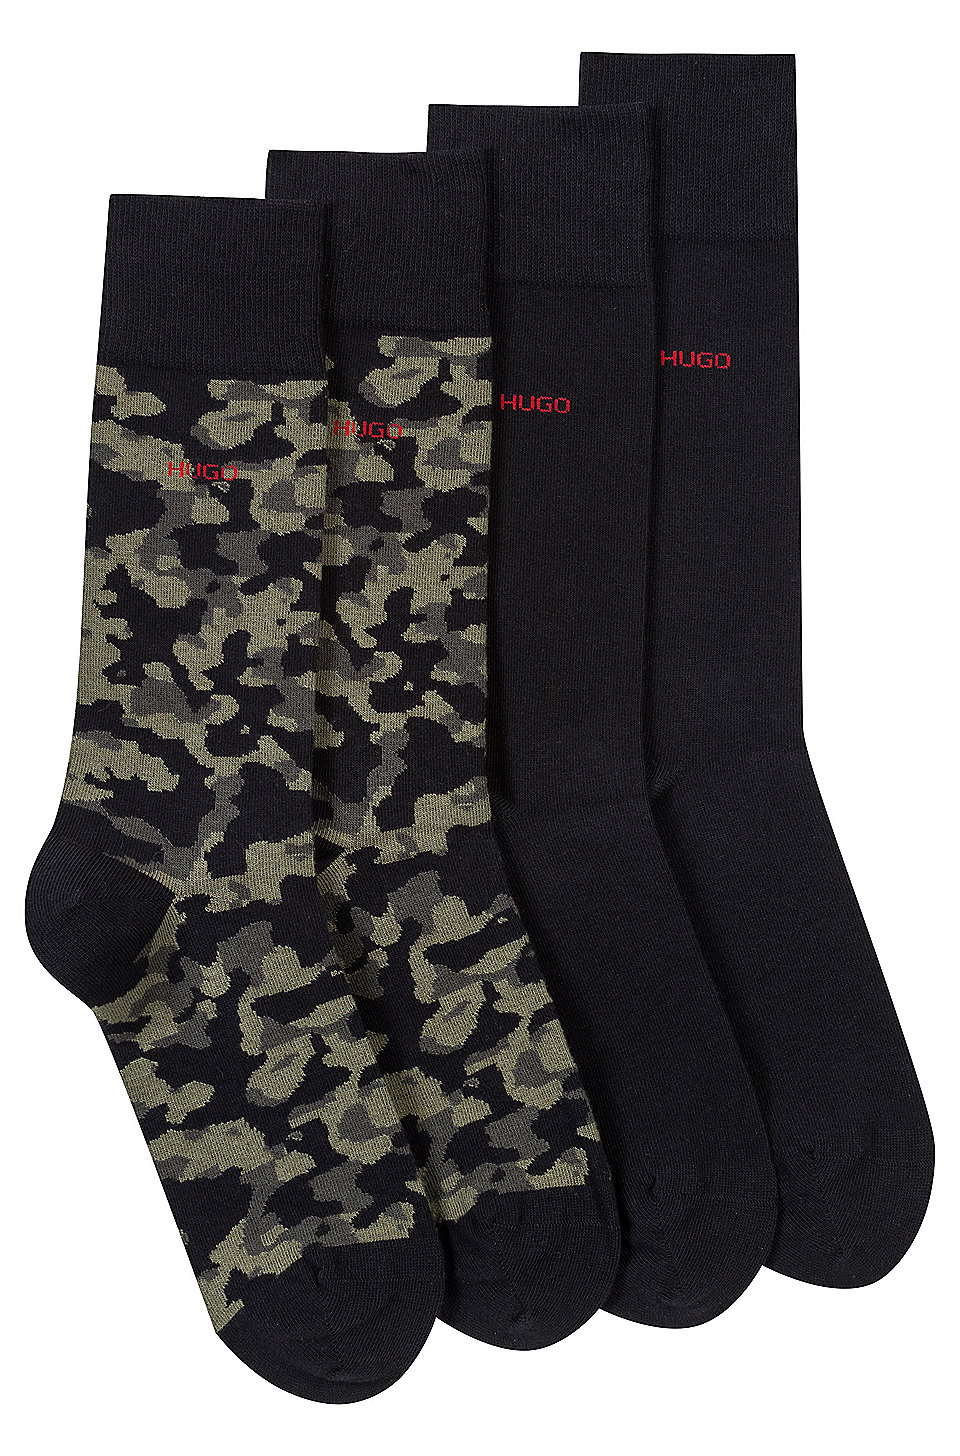 hugo zweier pack socken aus baumwoll mix mit unifarbenem dessin und camouflage motiv. Black Bedroom Furniture Sets. Home Design Ideas